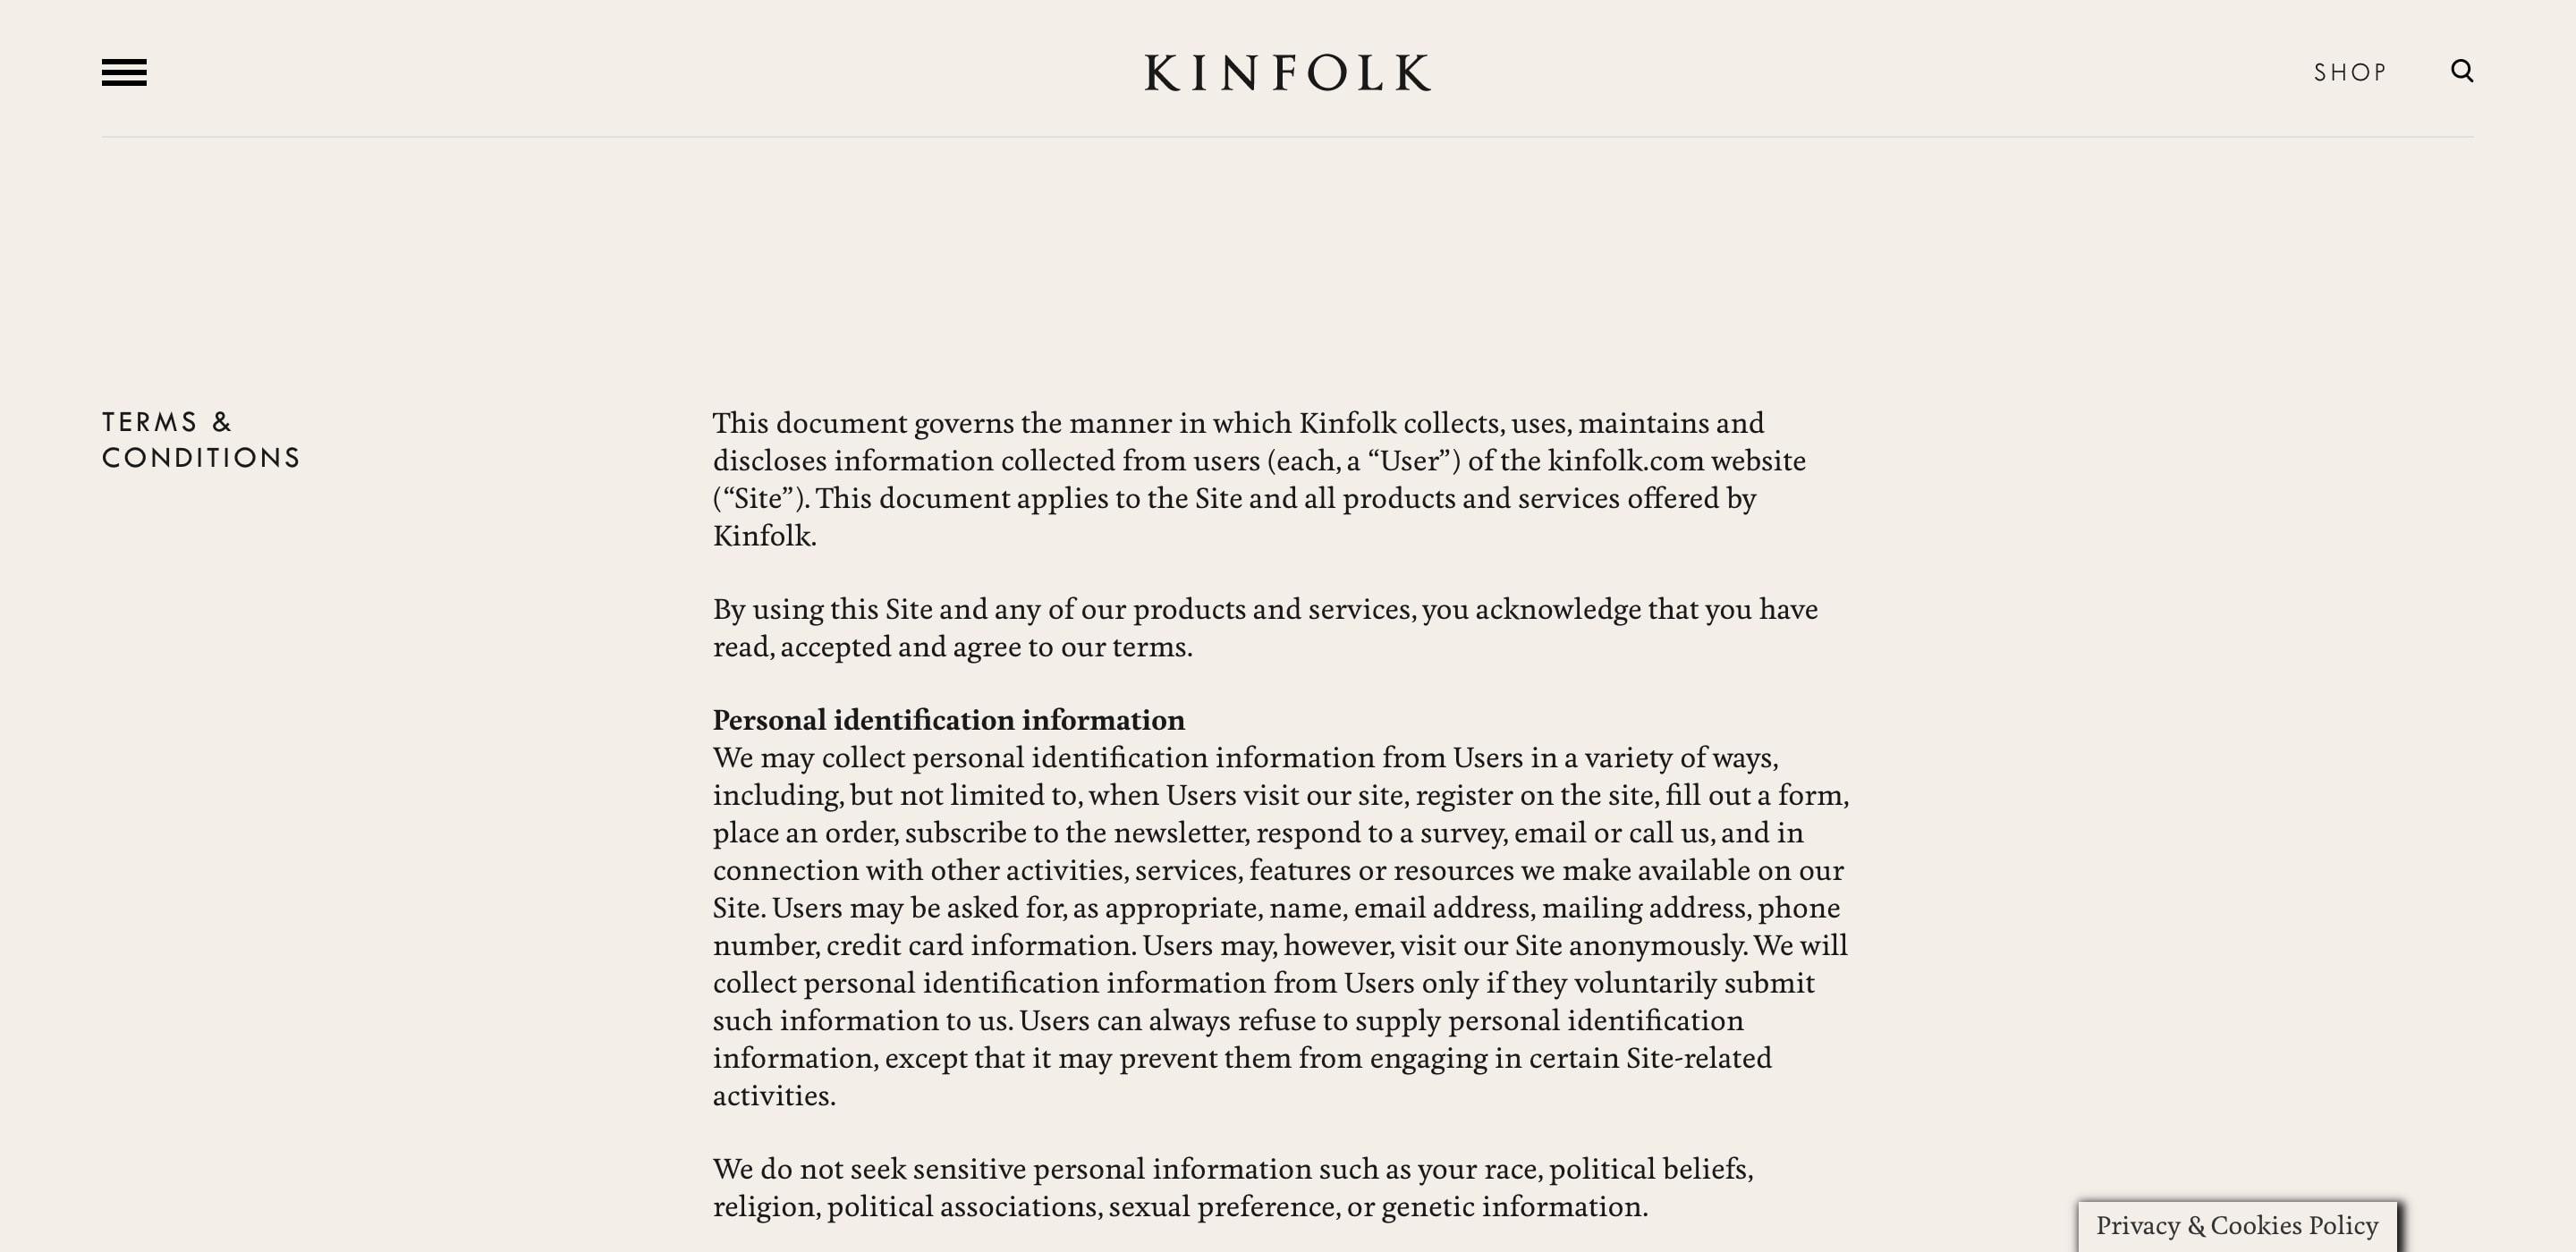 kinfolk terms and conditions page